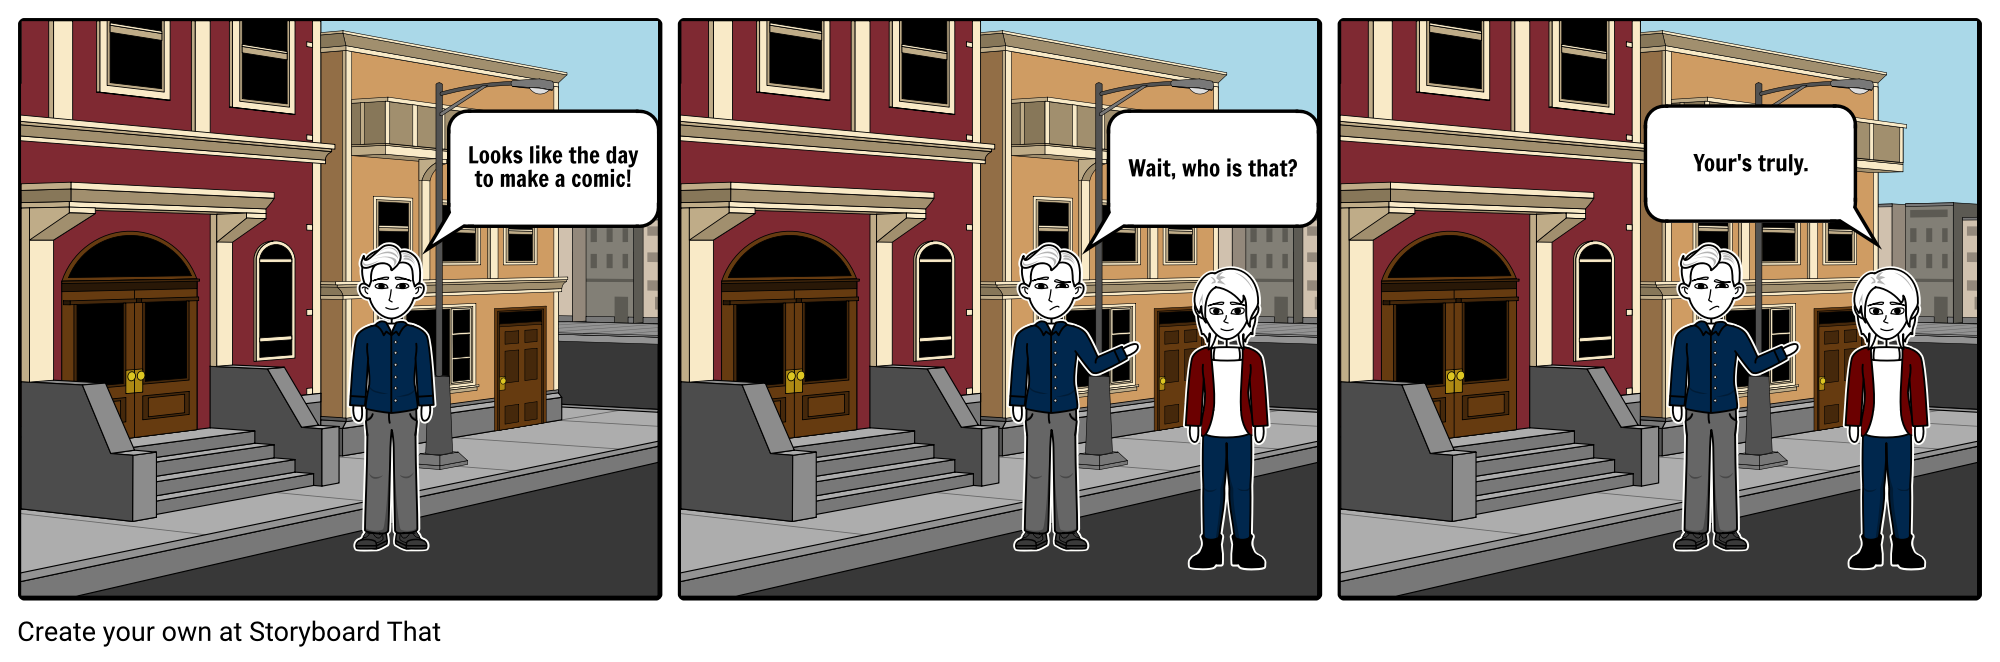 create an up to 24-panel comic strip for personal use